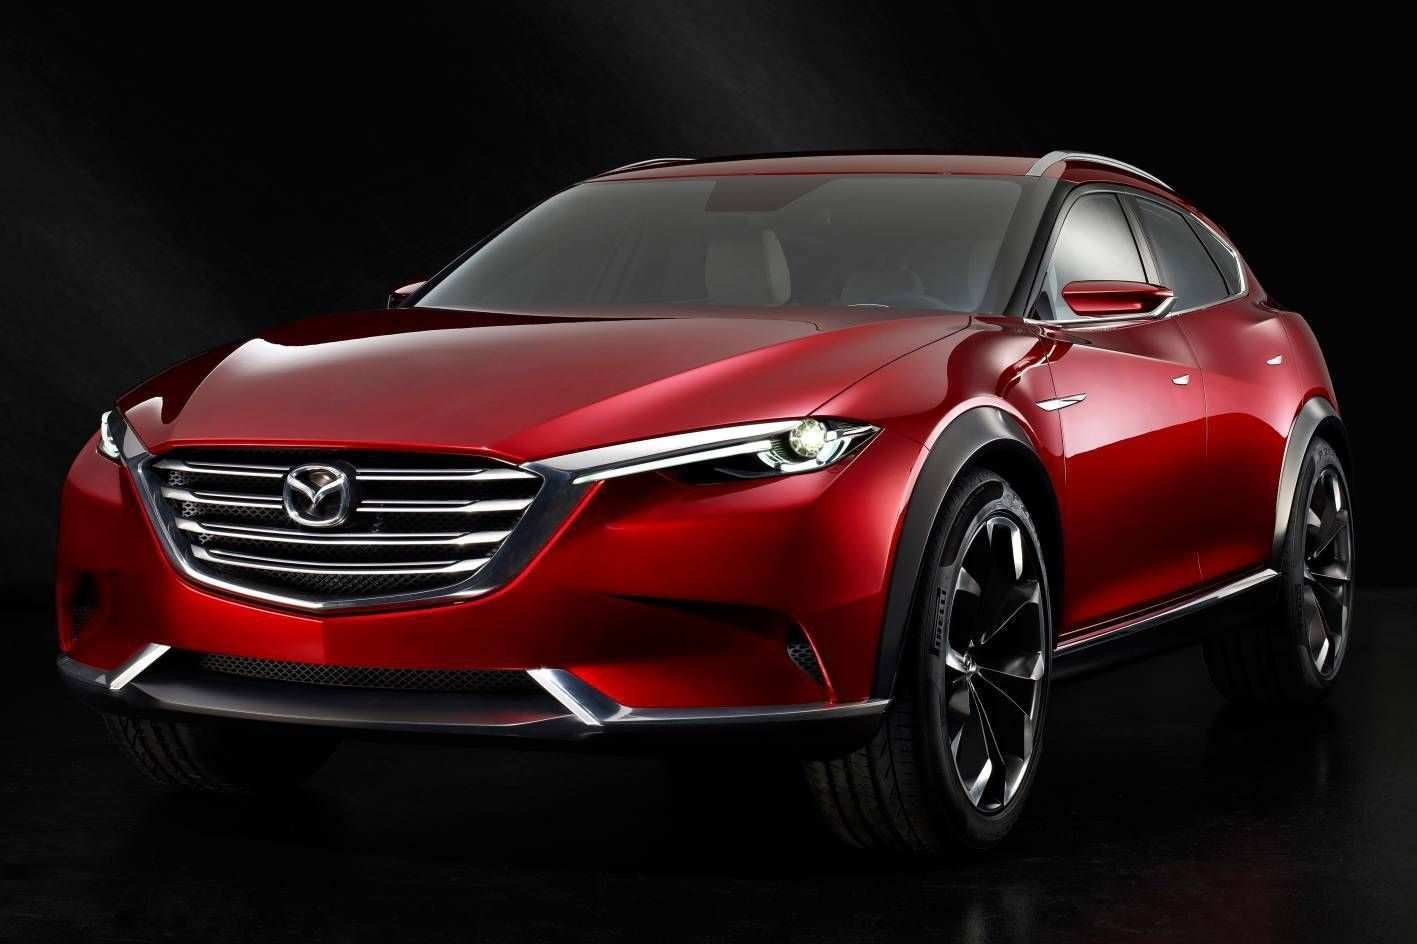 52 Concept of 2020 Mazda Cx 9 Price and Review for 2020 Mazda Cx 9